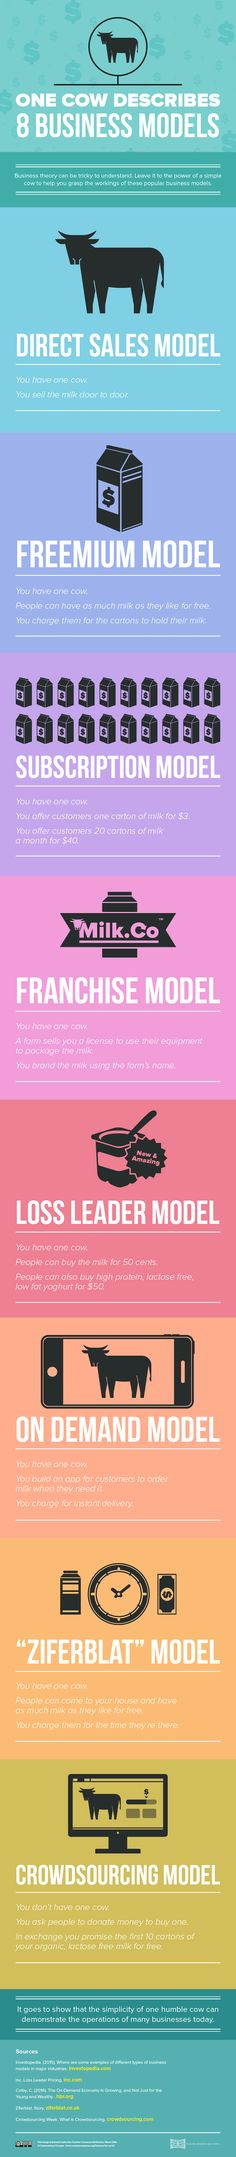 This Cow Illustrates 8 Business Models (Infographic)